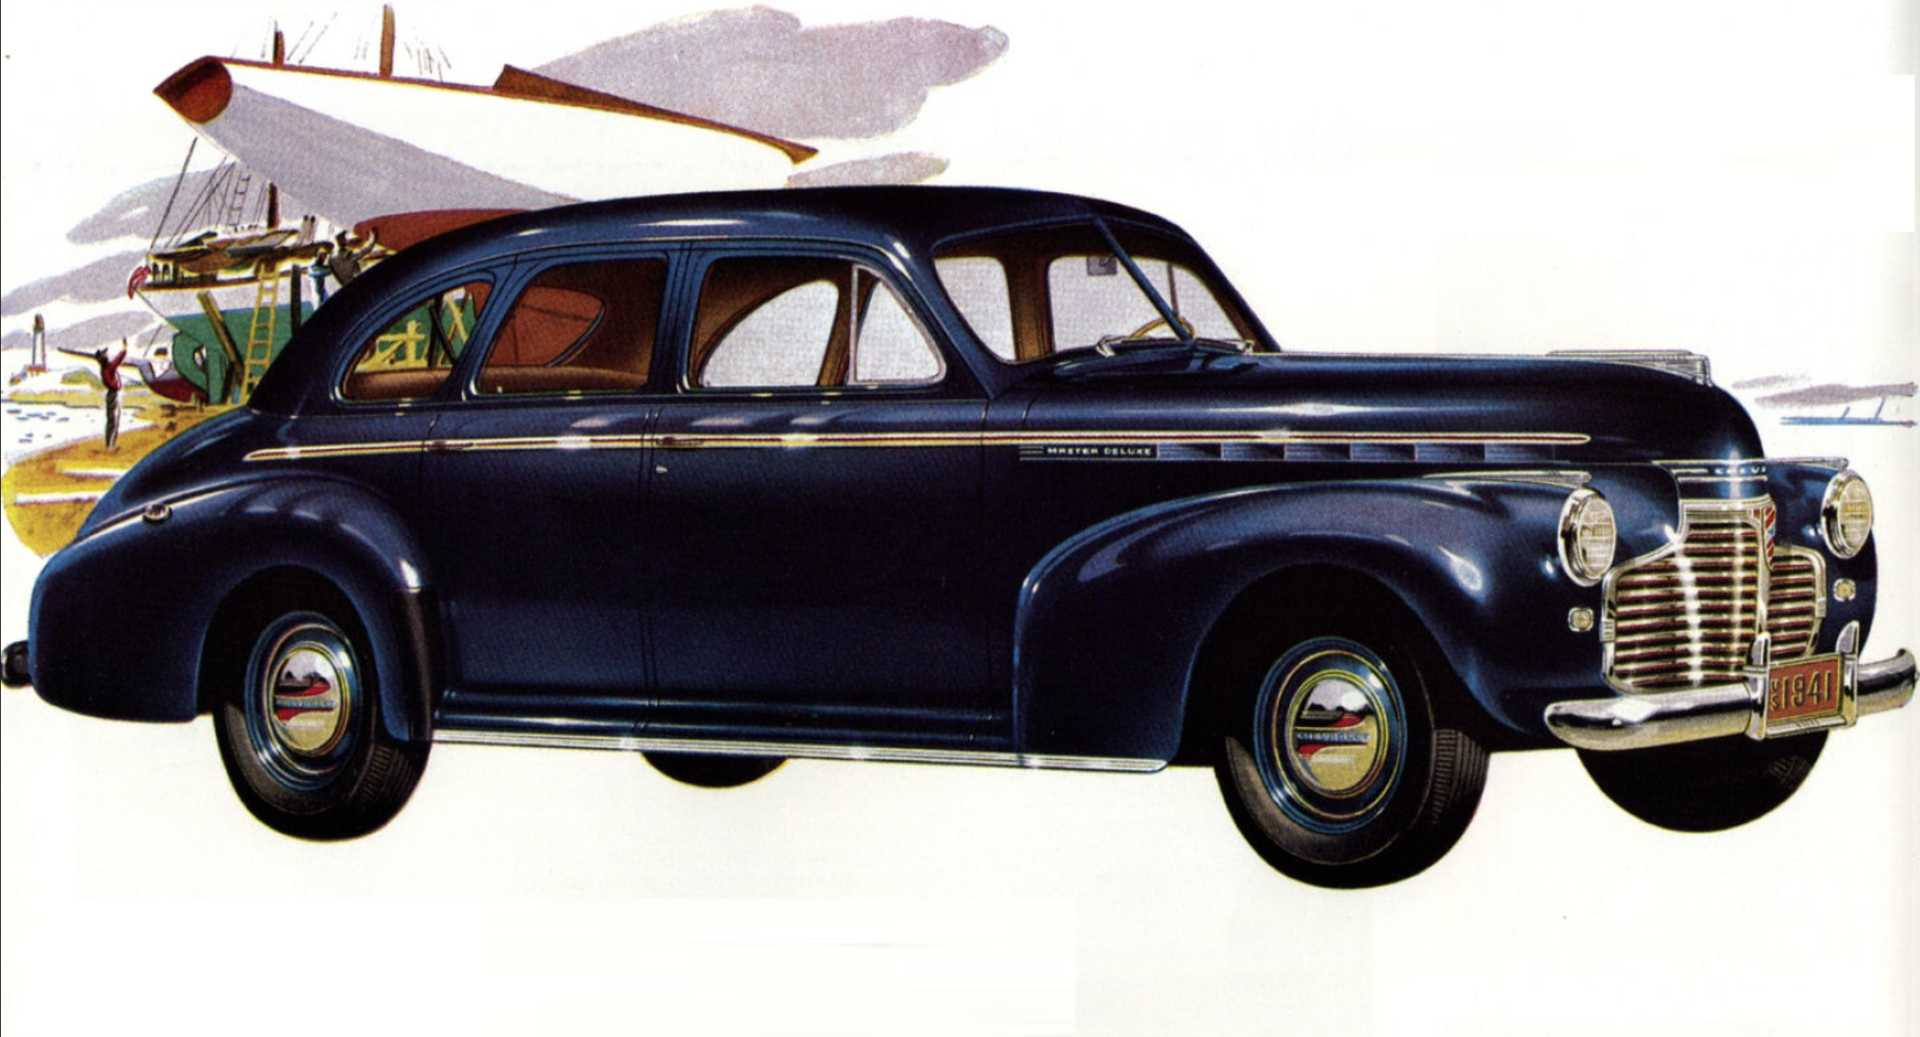 Chevrolet Master Deluxe Sport Sedan 3.5 Manual, 91hp, 1941